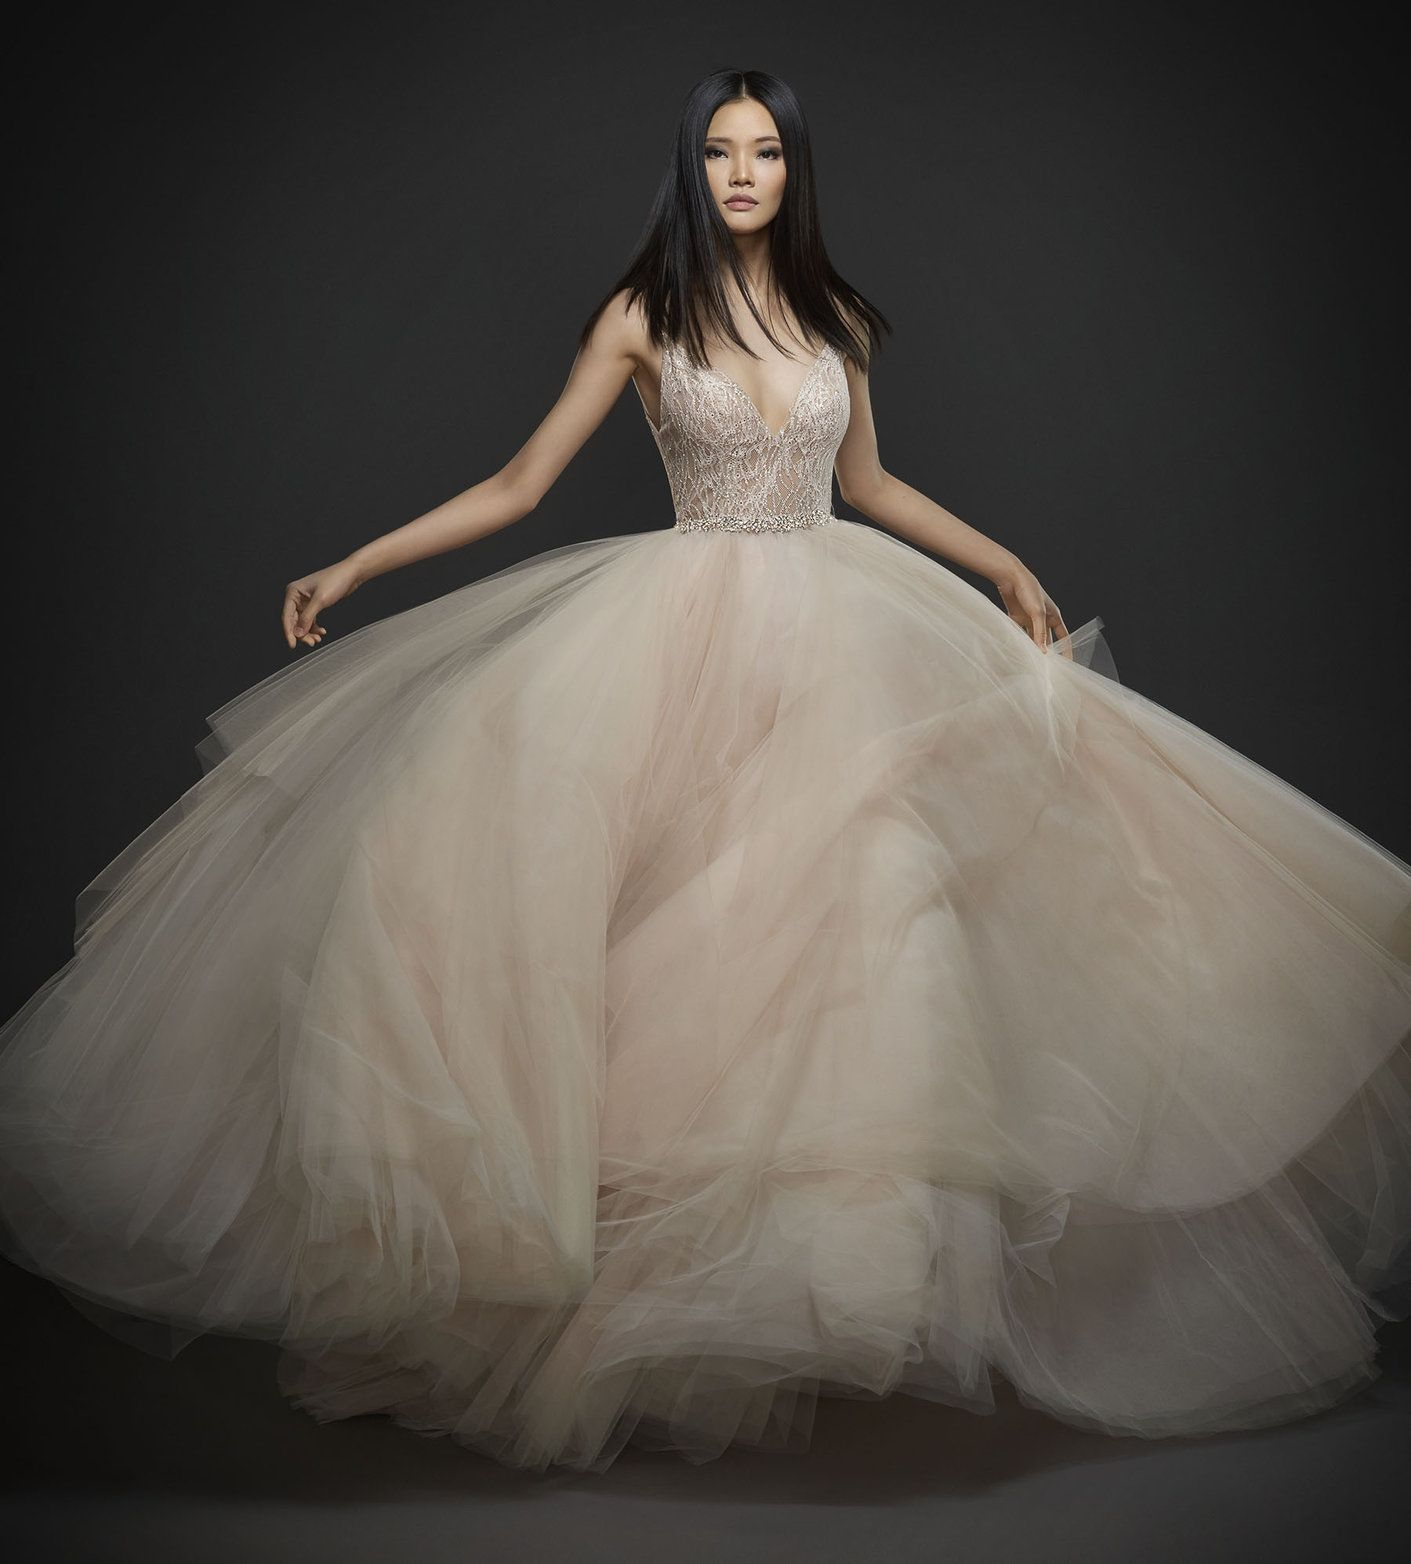 Blush shimmer tulle bridal ball gown strapless sweetheart